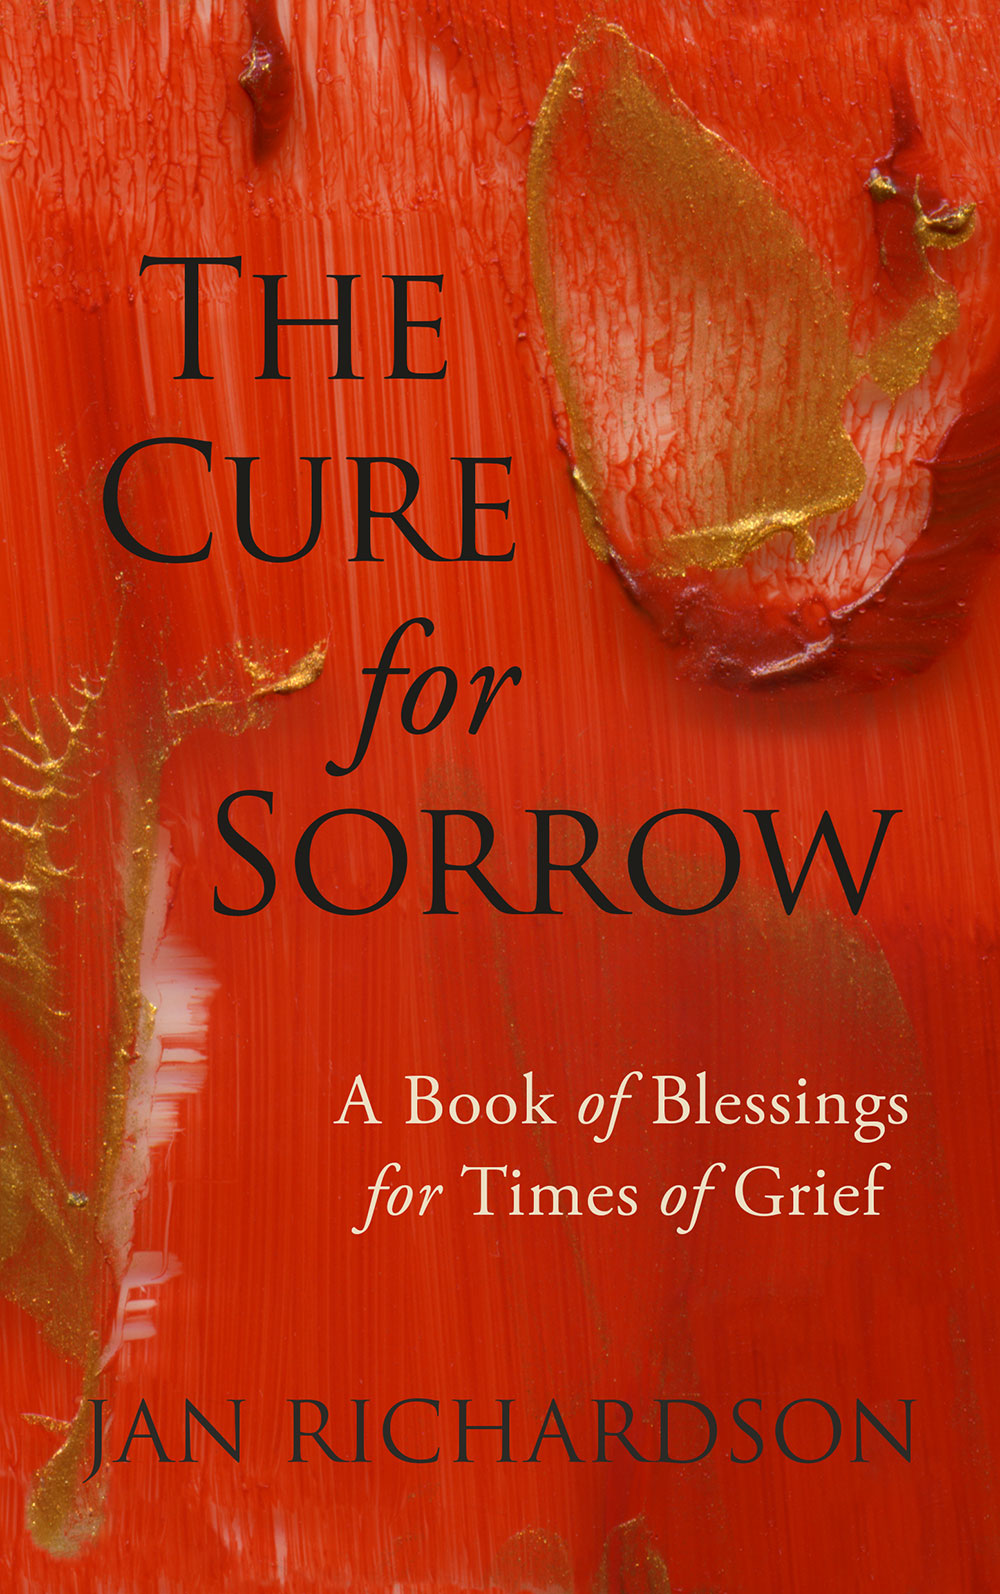 The Cure for Sorrow